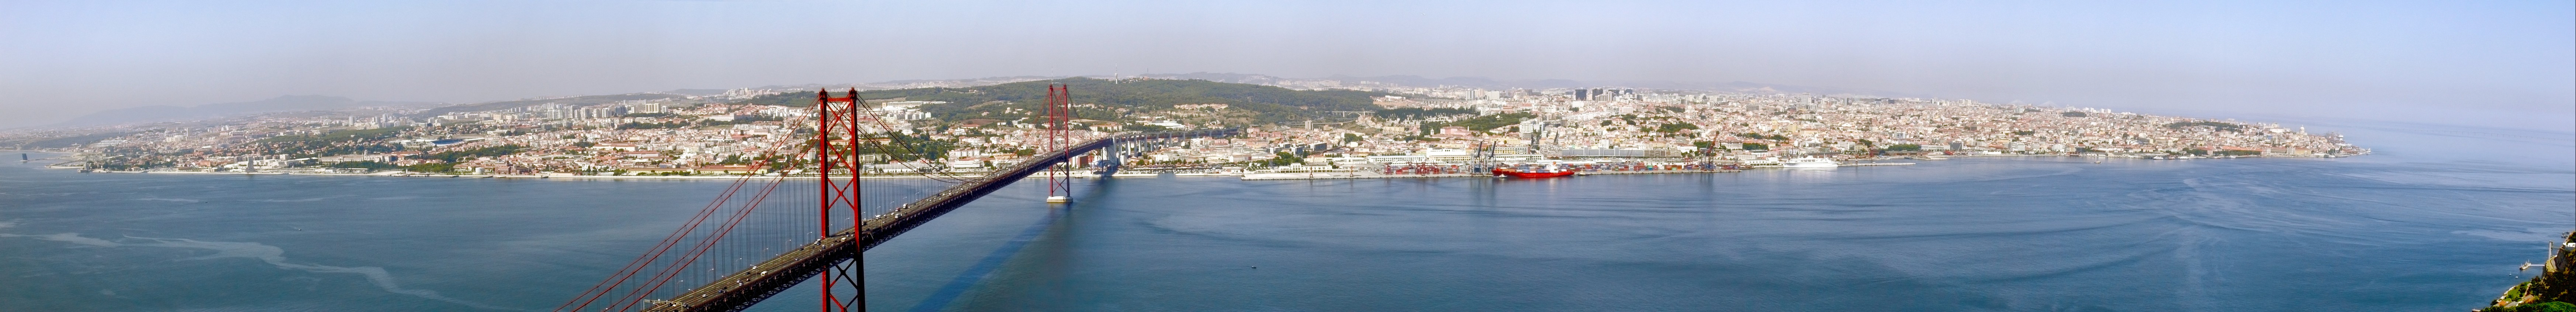 https://upload.wikimedia.org/wikipedia/commons/6/6e/Lisboa-lisbon-_panorama.jpg